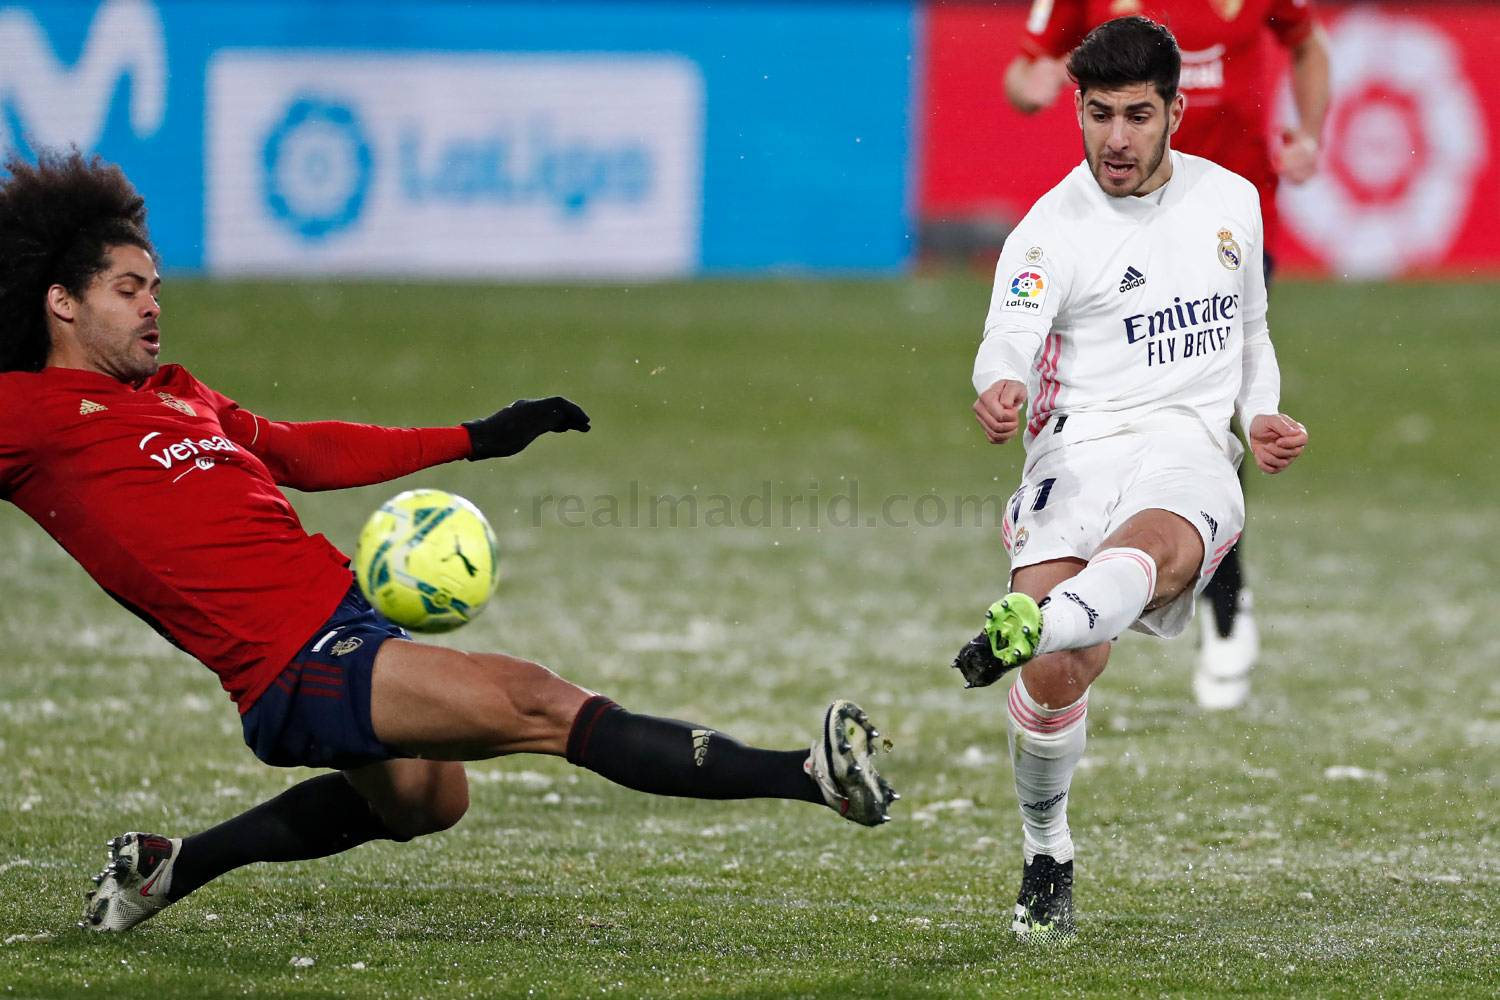 Real Madrid - Osasuna - Real Madrid - 20-01-2021